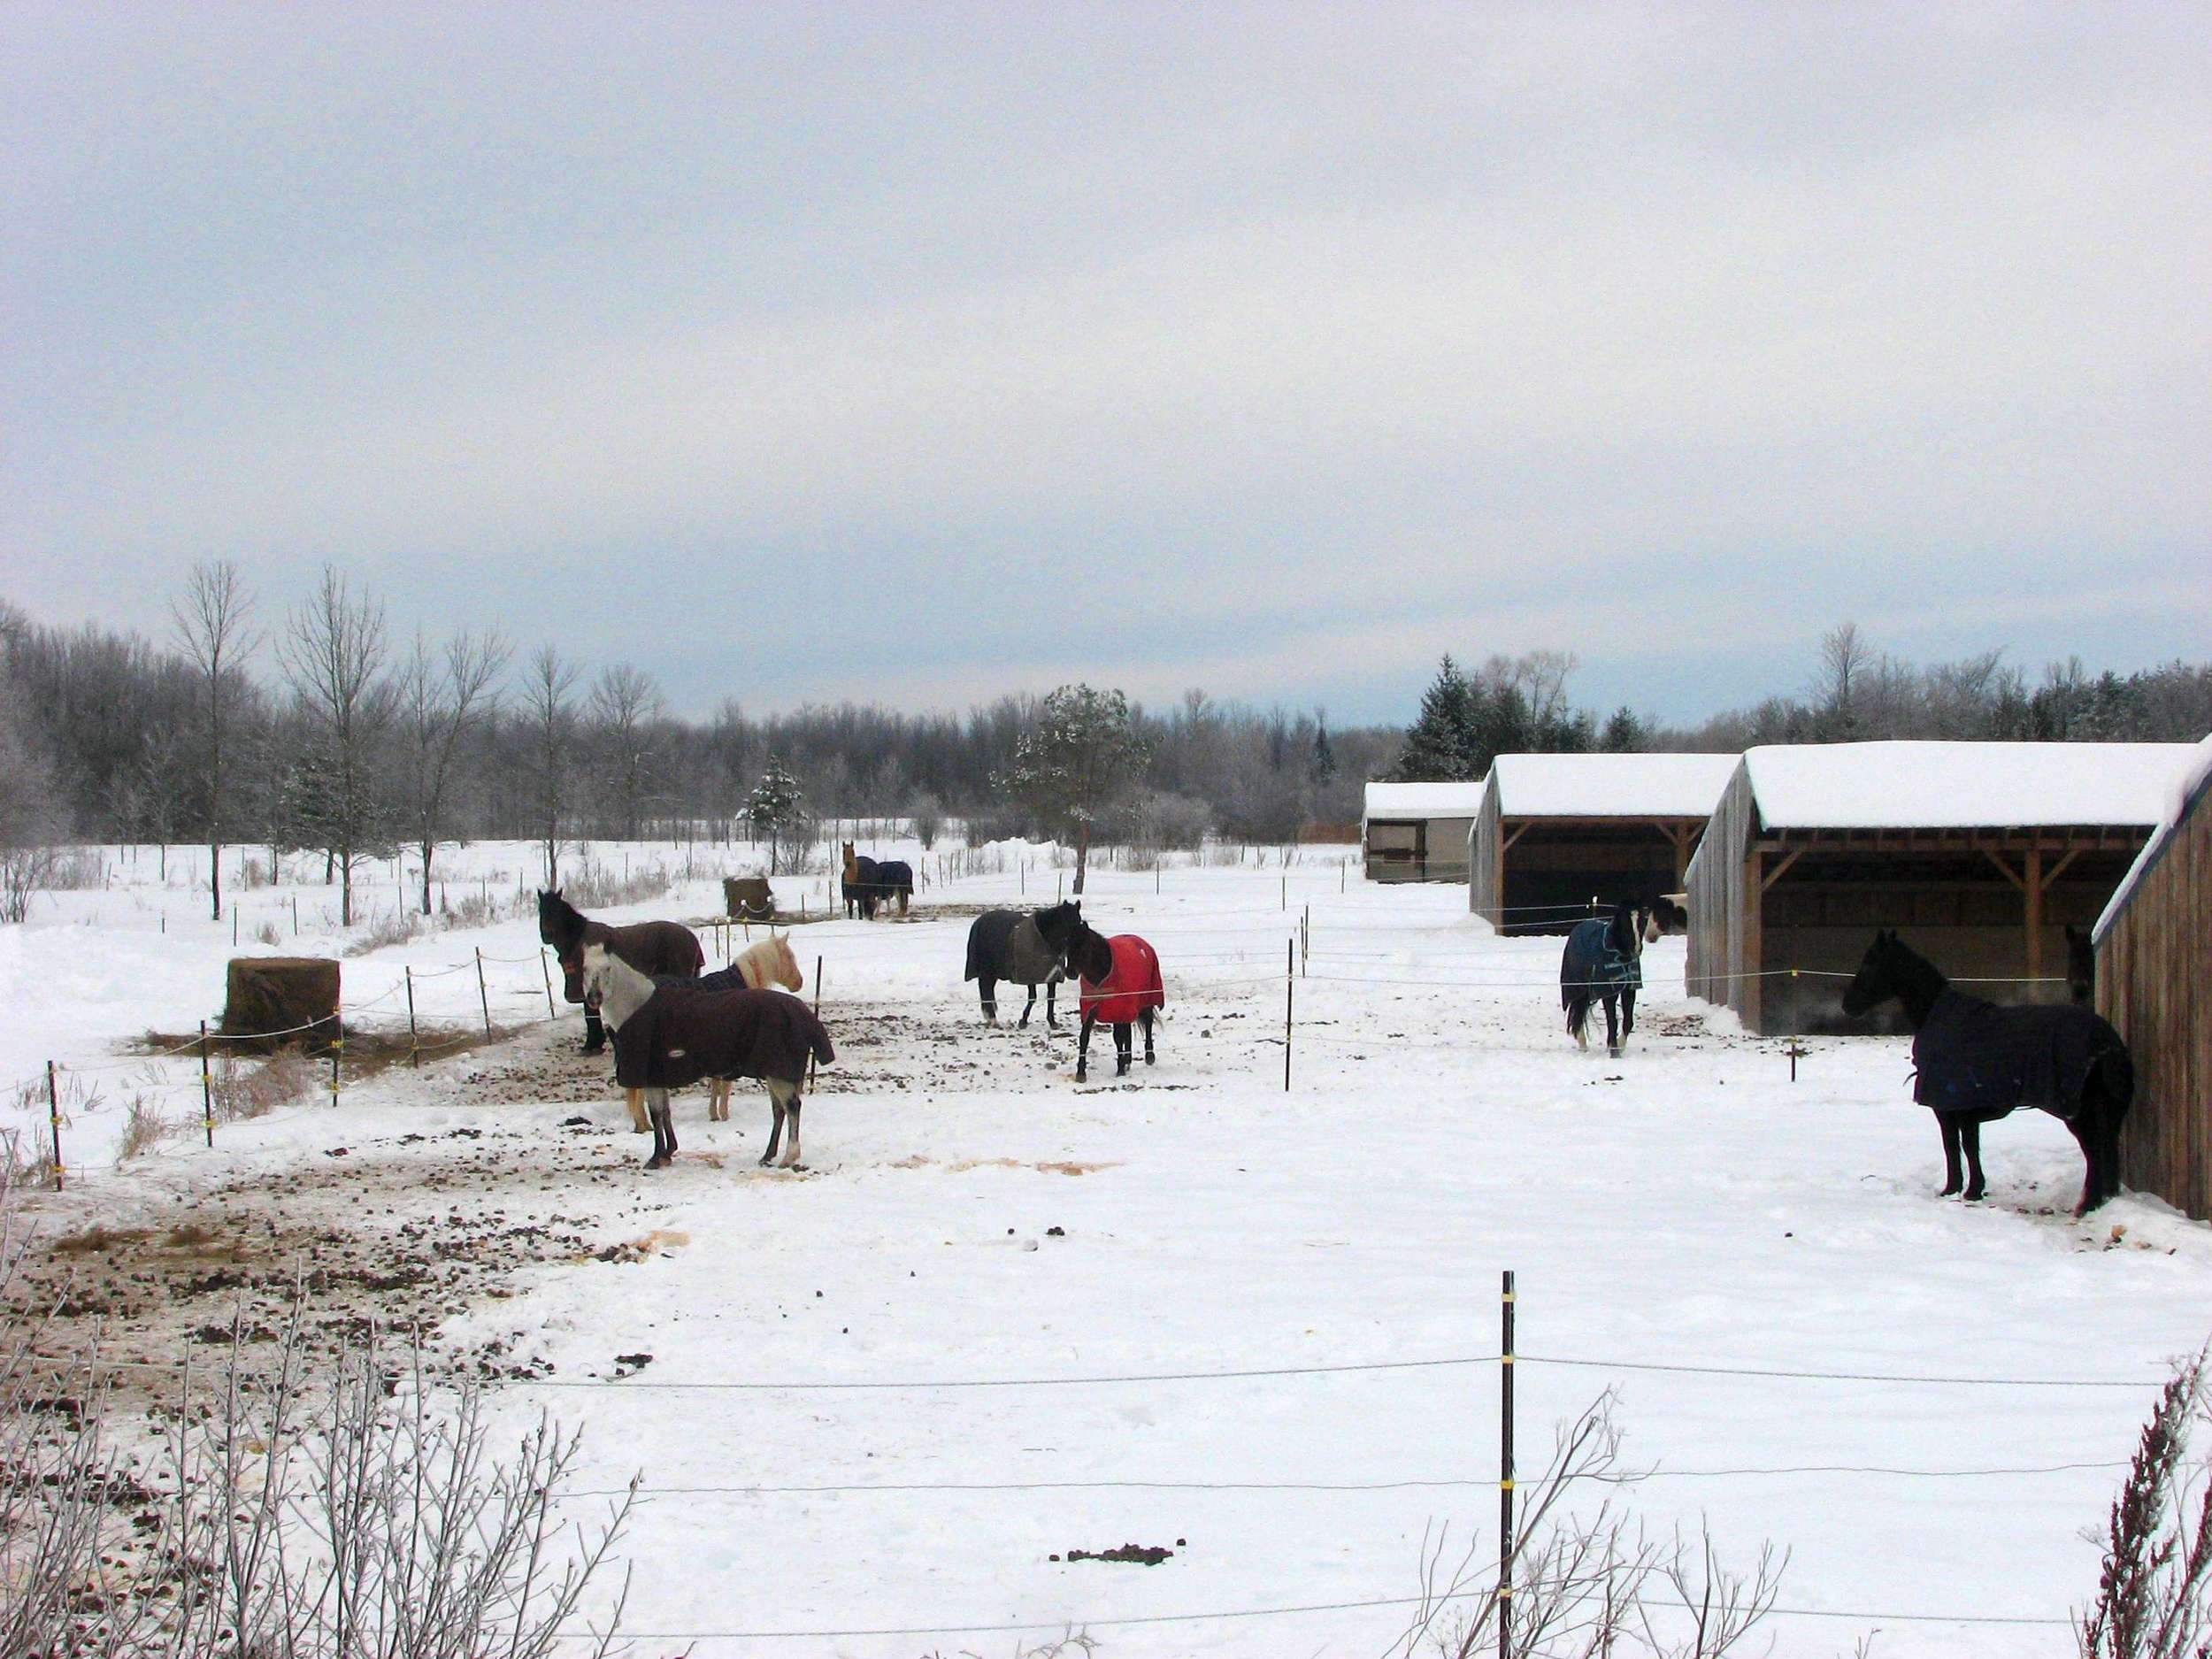 Even at 1000, pictures can use some more words. Just before I took this photo the horse on the right (blue warmer) was approaching the one wearing red warmer. The one with the red bit the blue one, who then ran away. Then they were back to observing the crazy winter cyclist by the road.